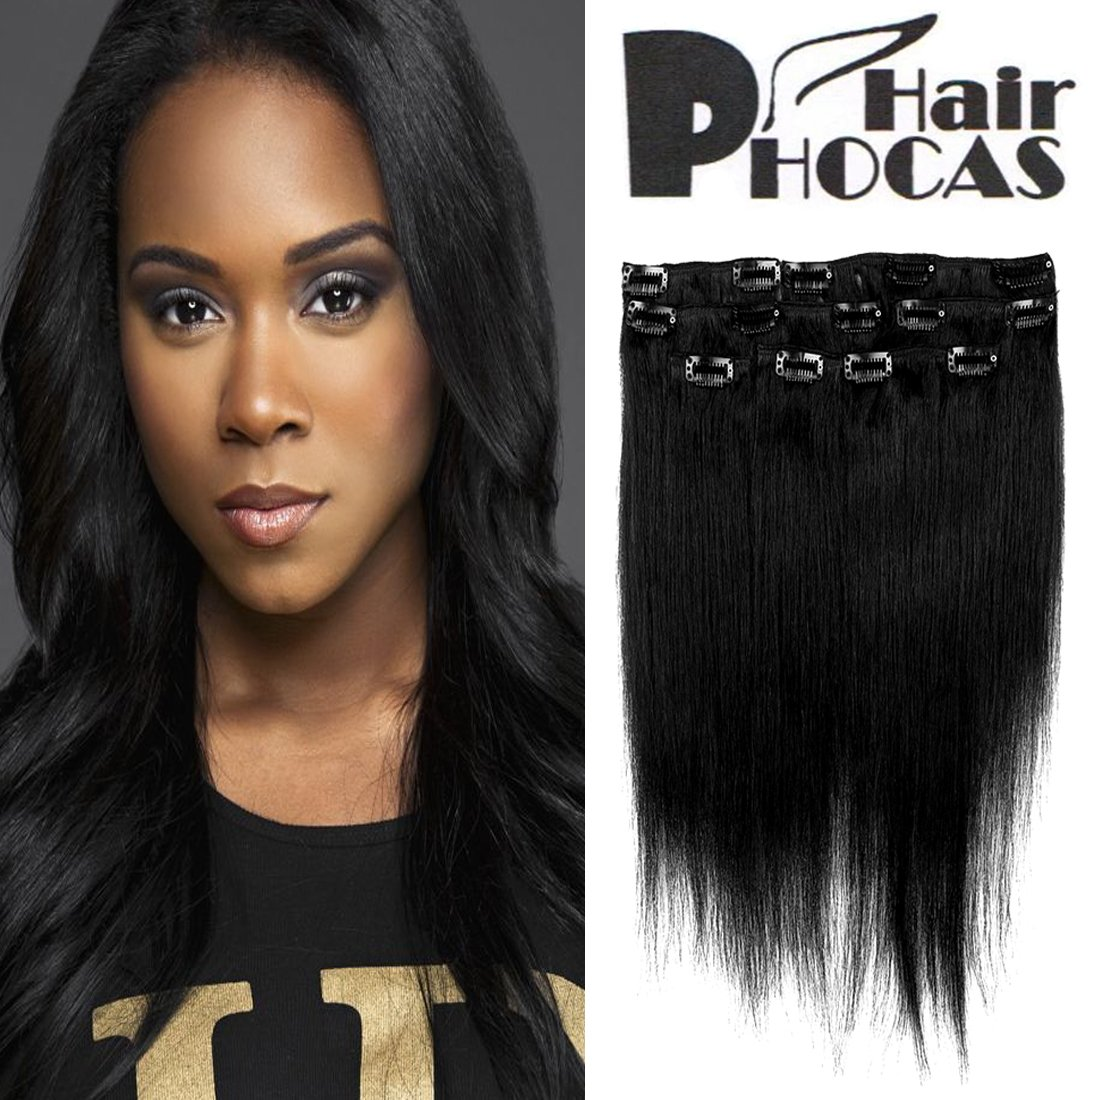 Amazon Hairphocas 14 Inch 1 Clip In Remy Human Hair